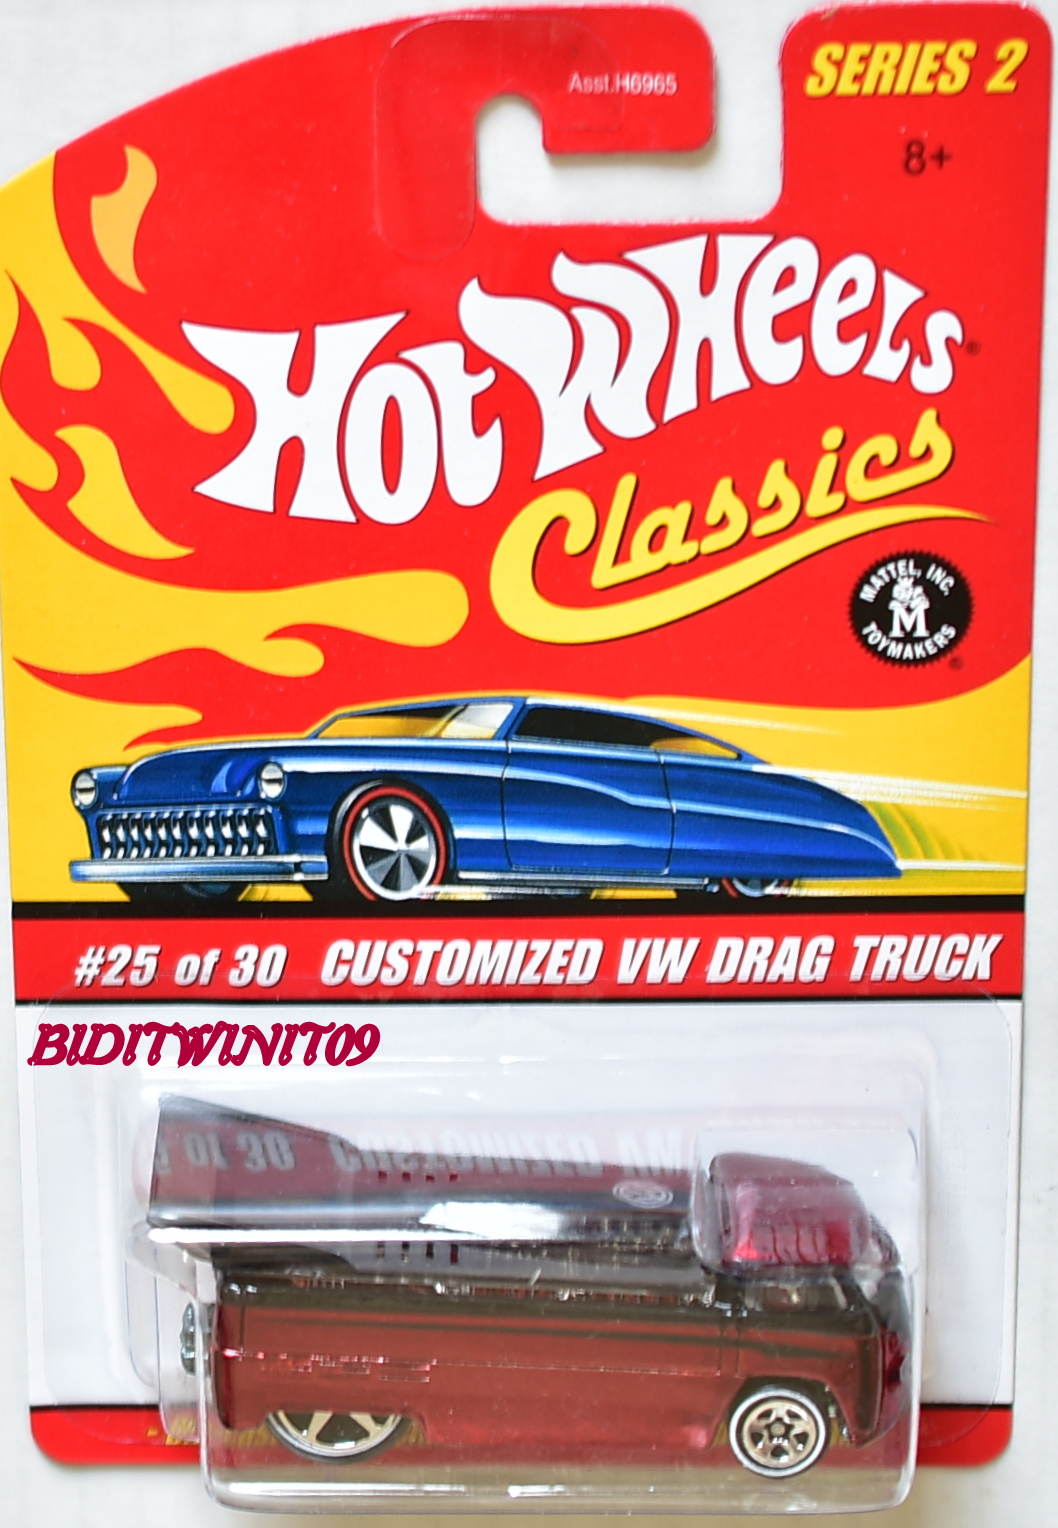 HOT WHEELS CLASSICS SERIES 2 #25/30 CUSTOMIZED VW DRAG TRUCK RED